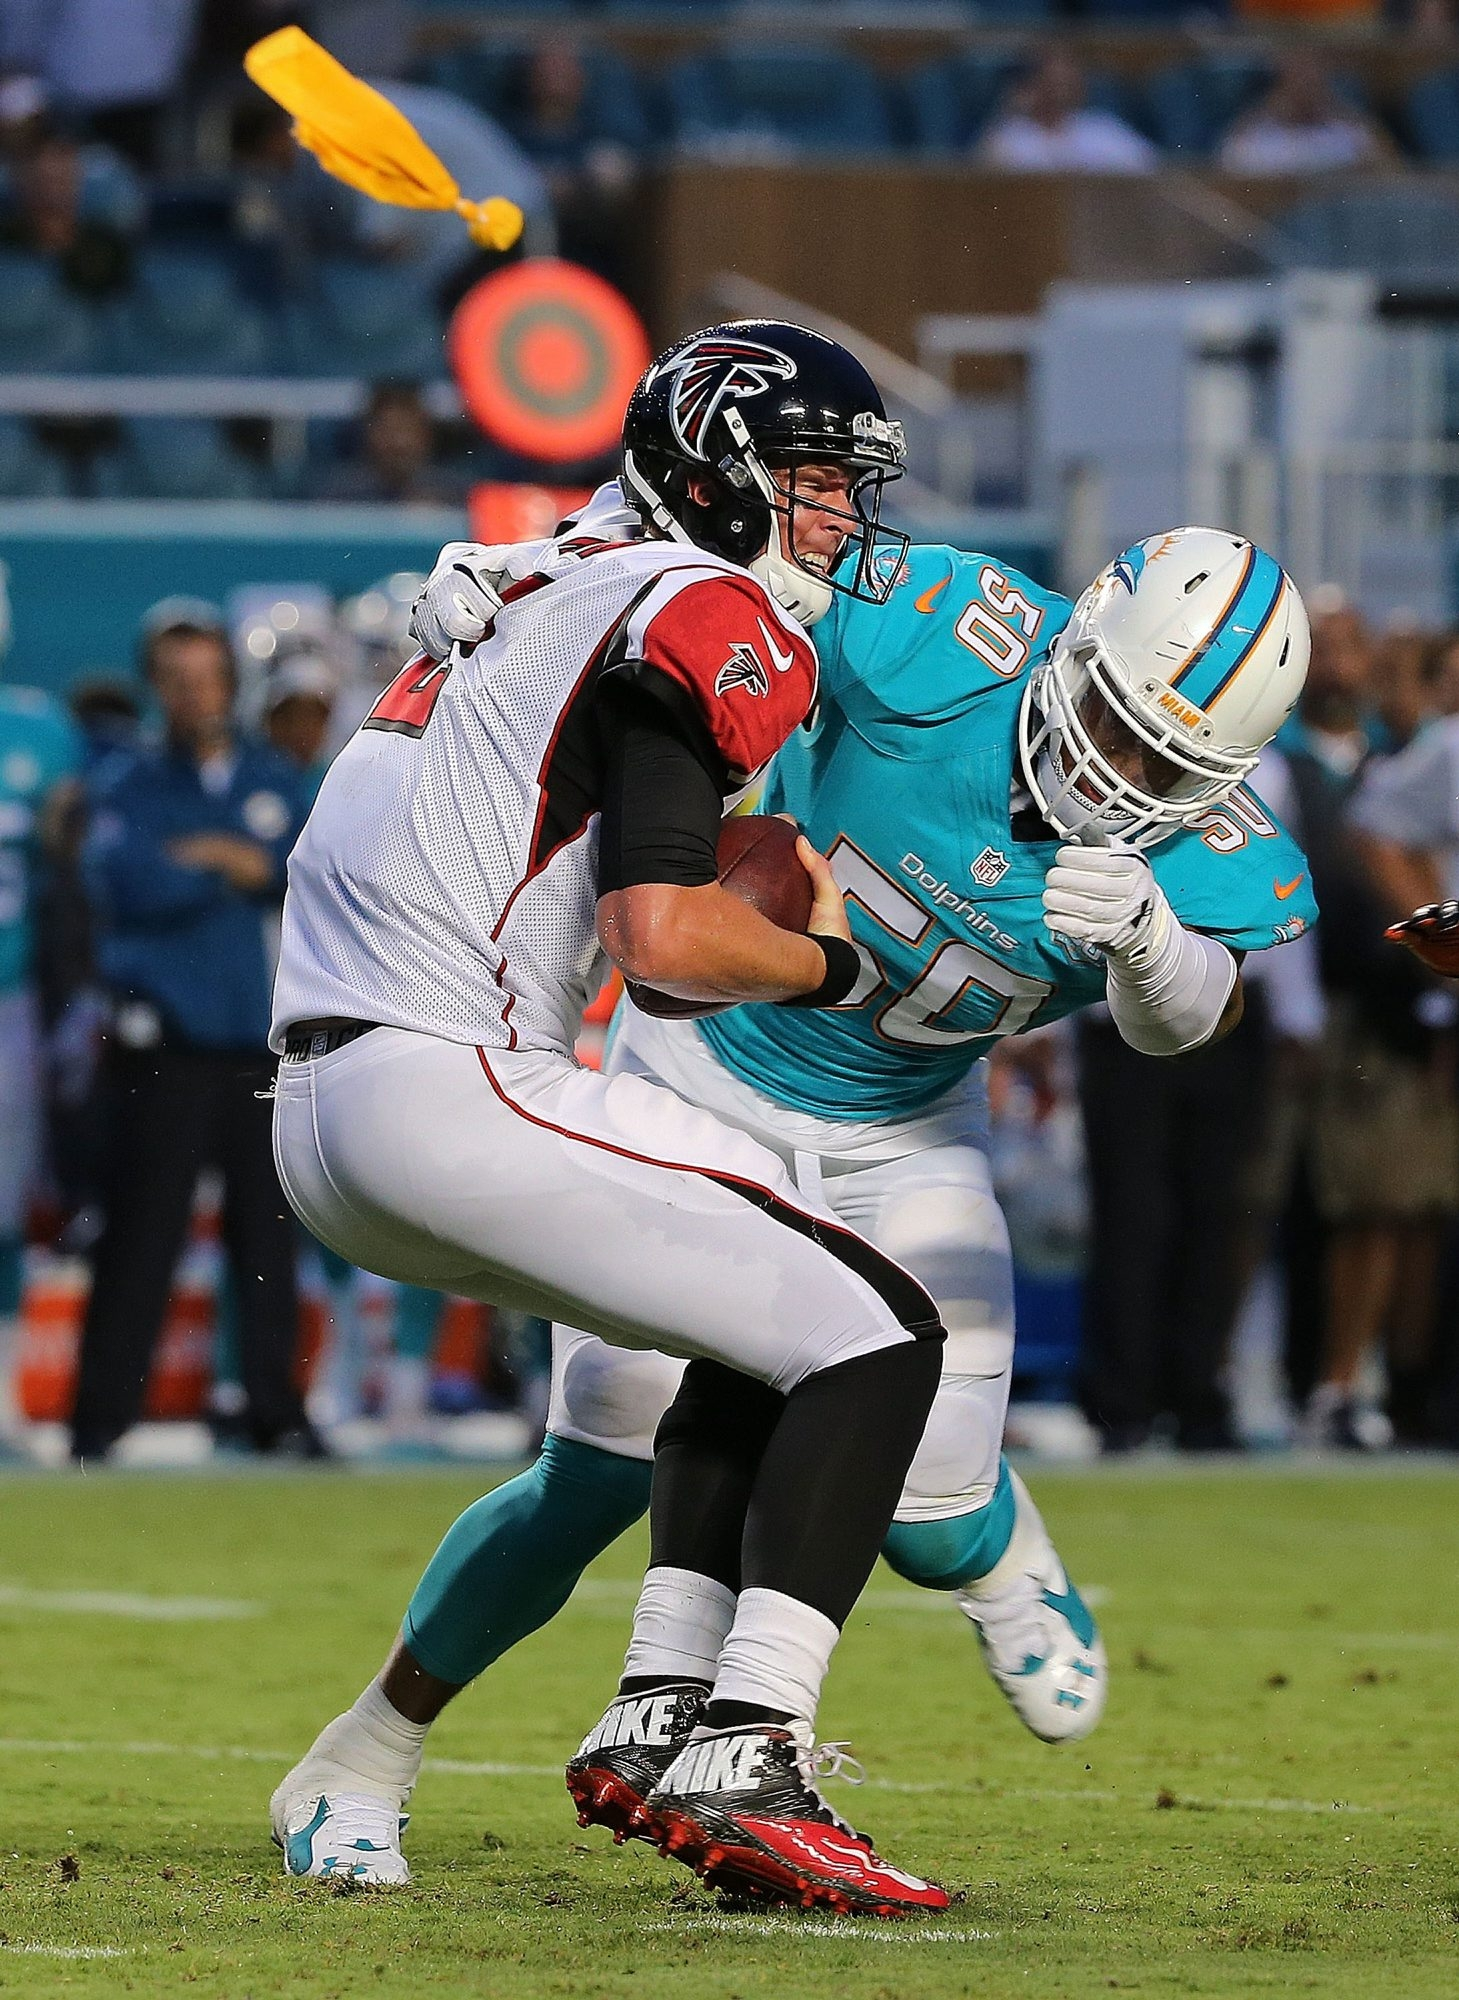 Olivier Vernon (50) of the Miami Dolphins is one of several starting caliber defensive ends available in NFL free agency.